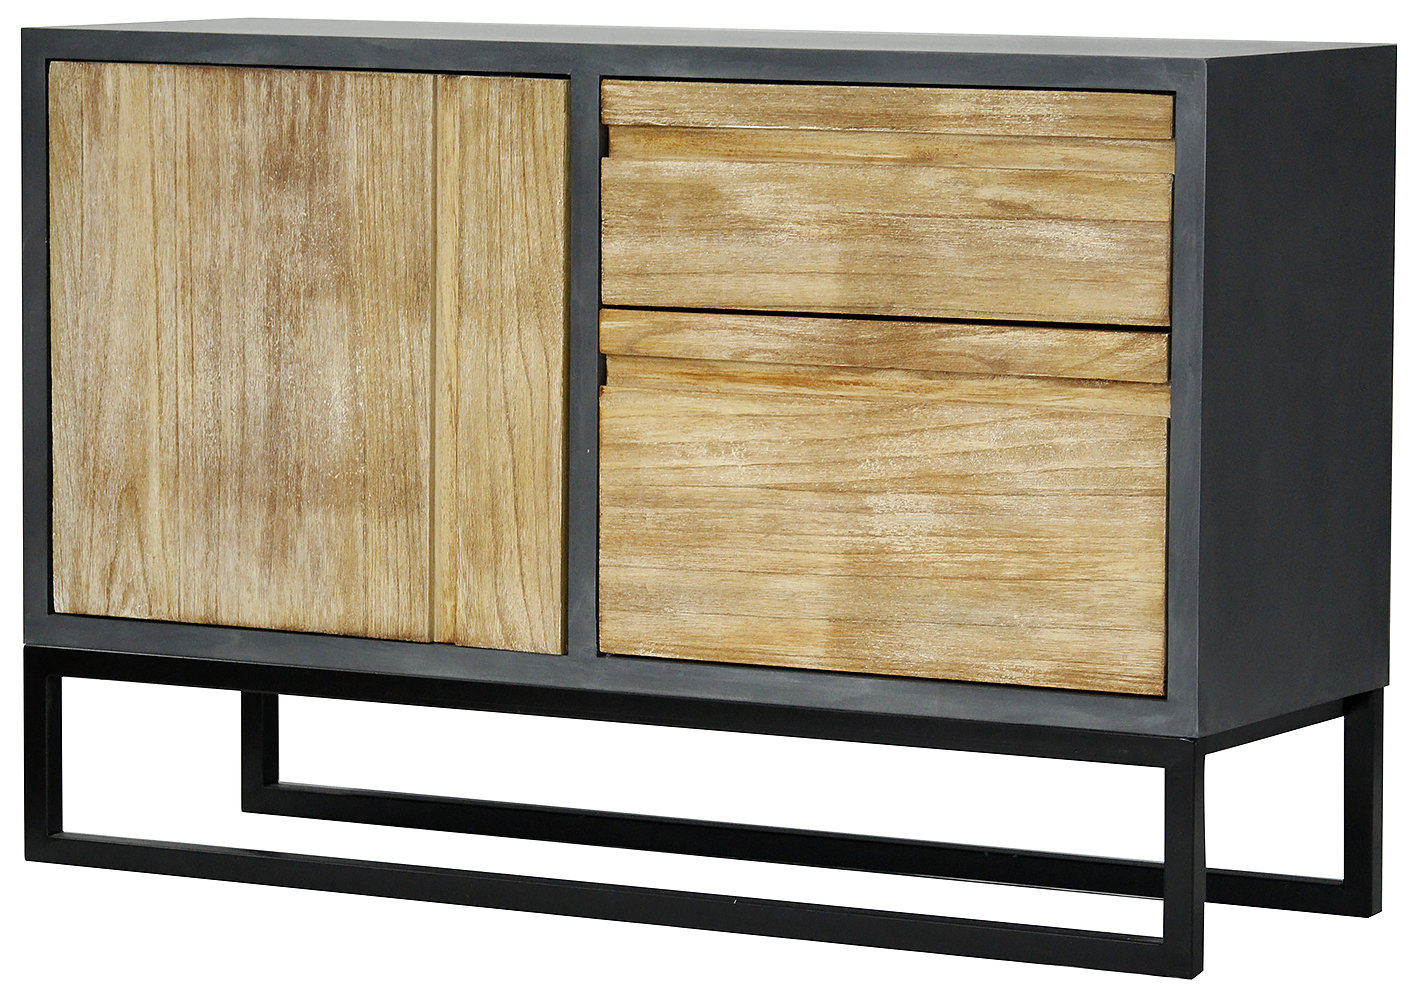 Modern Trent Austin Design Sideboards + Buffets | Allmodern Pertaining To 2018 Casolino Sideboards (#16 of 20)